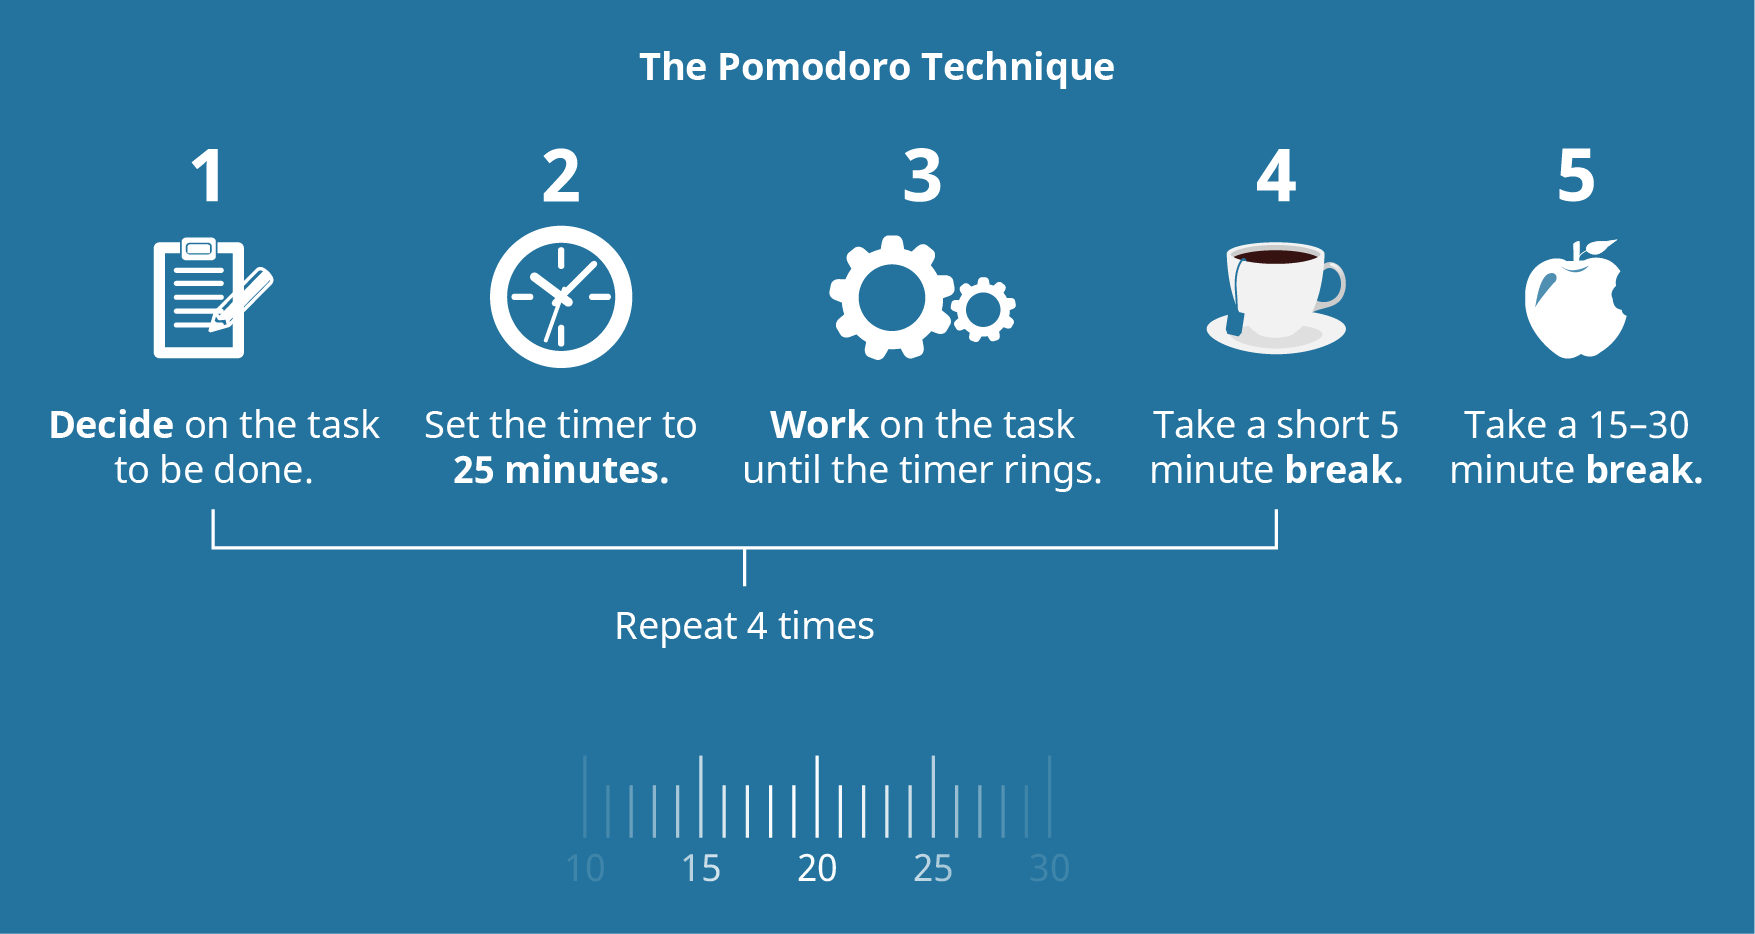 The Pomodoro technique is illustrated.